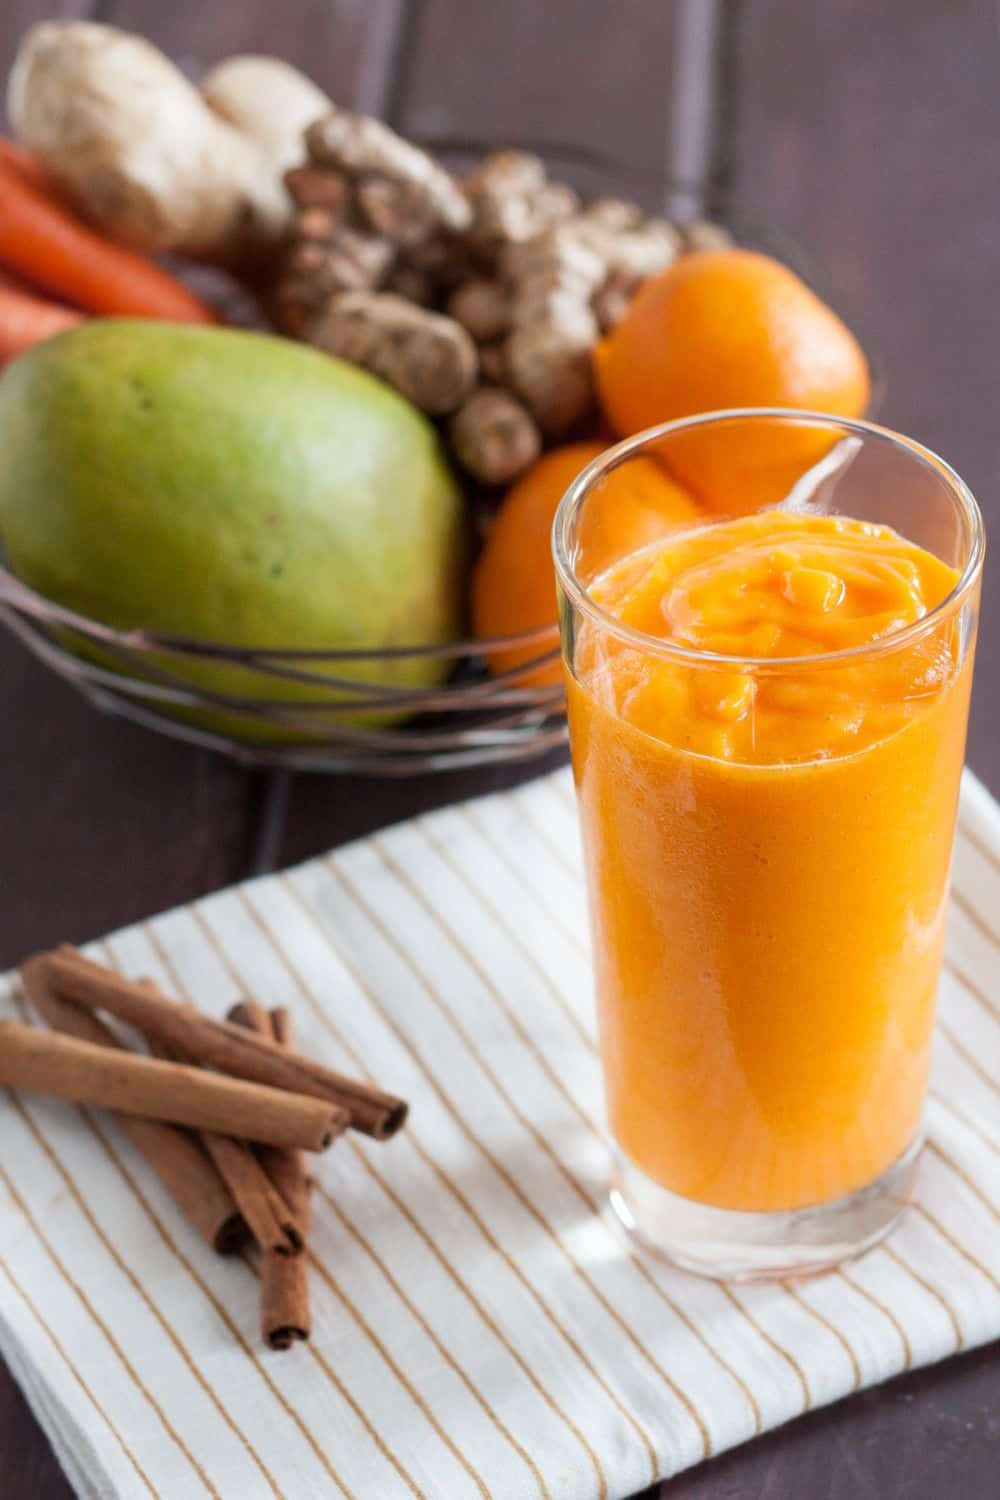 Fresh turmeric smoothie recipe - Mango, fresh turmeric, carrots, ginger, and more make this vitamin and antioxidant loaded vegan smoothie a delicious way to start the day!